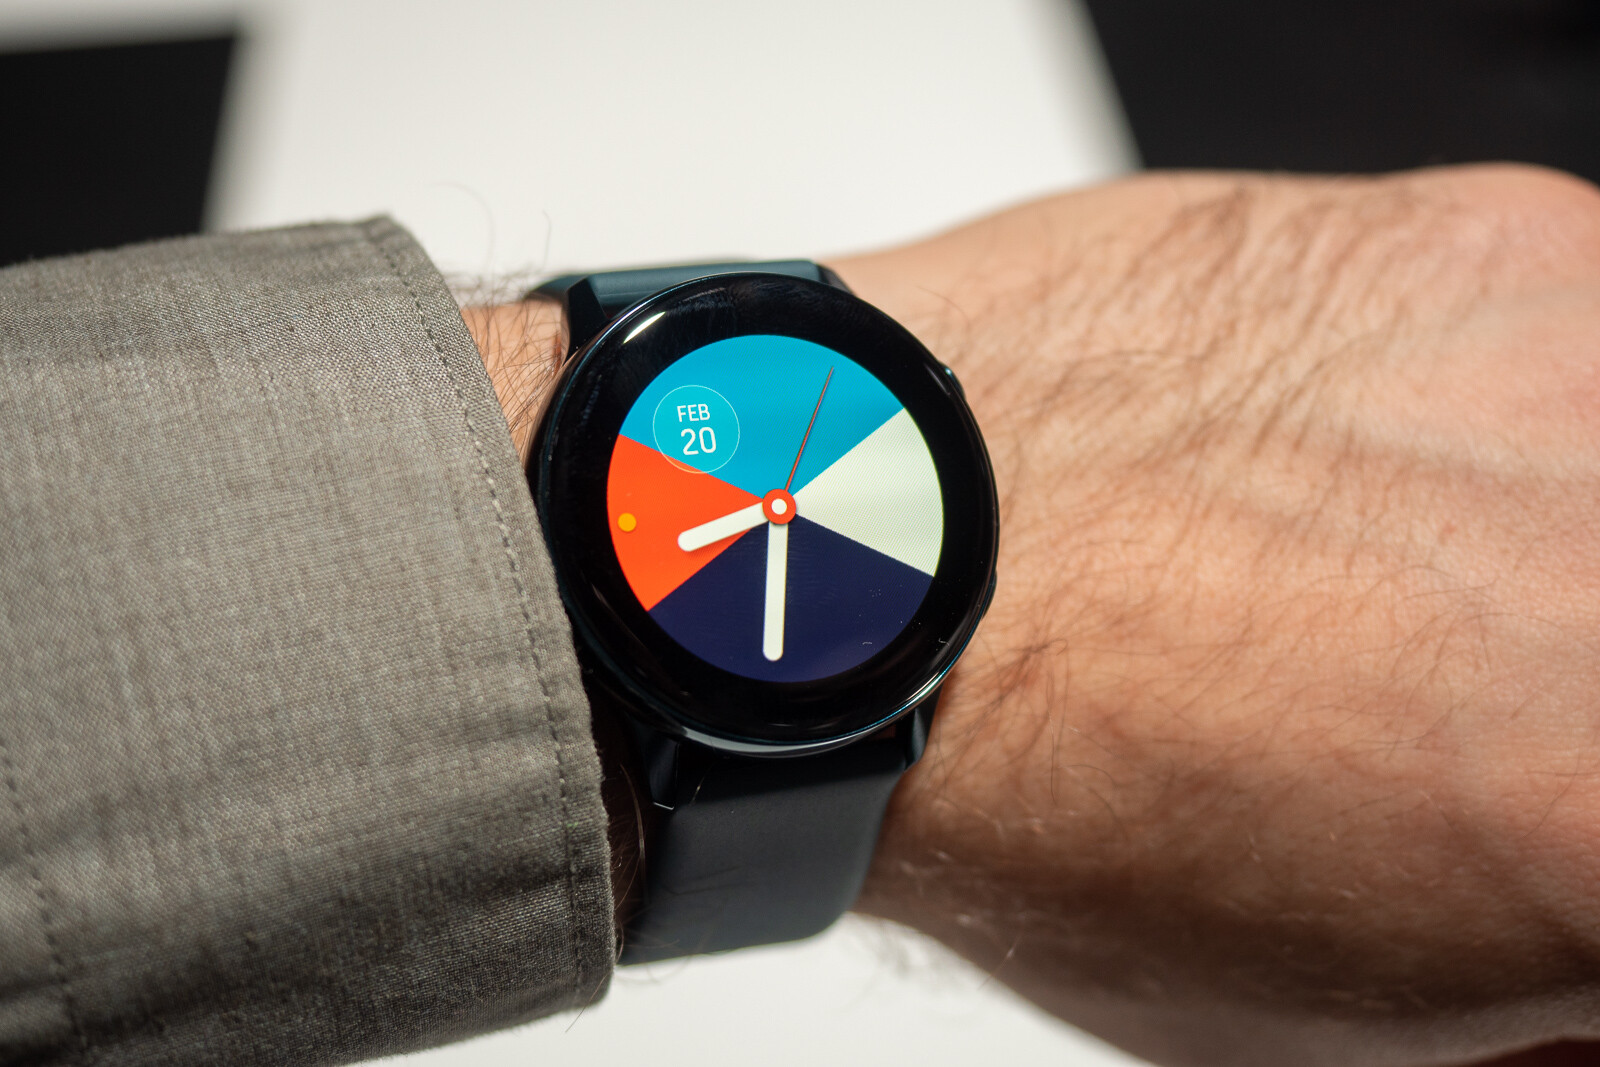 Samsung Galaxy Watch Active hands-on: compact, stylish, functional, and affordable